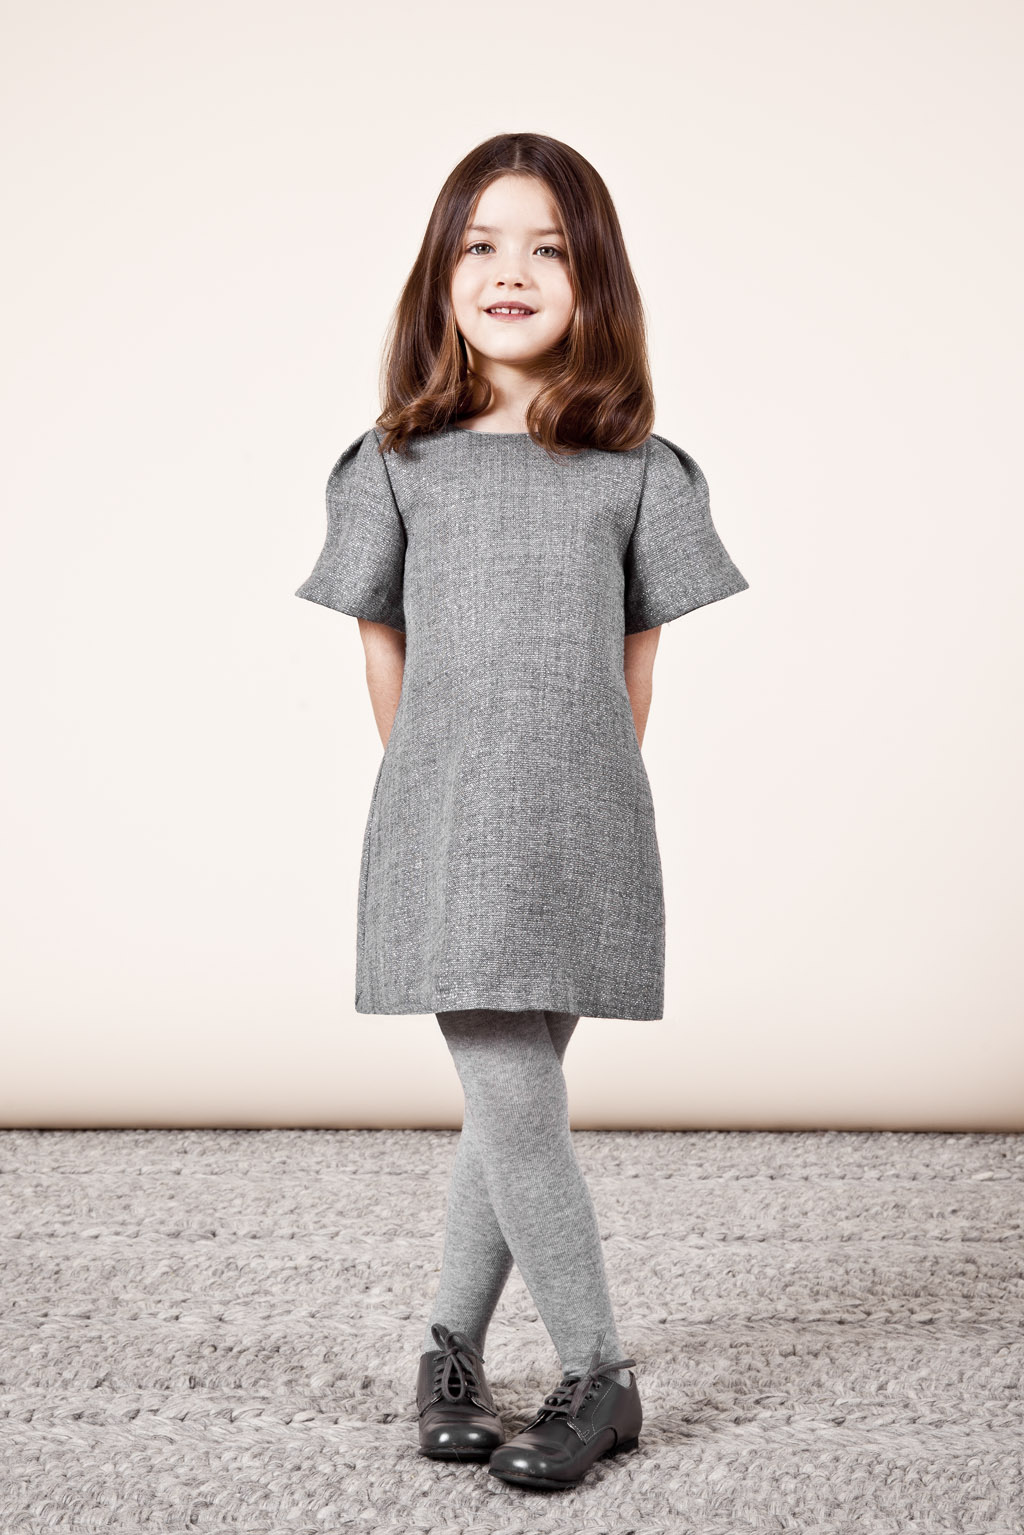 Alalosha Vogue Enfants Child Model Of The Day Lёlya: CHLOE Kids FW2013